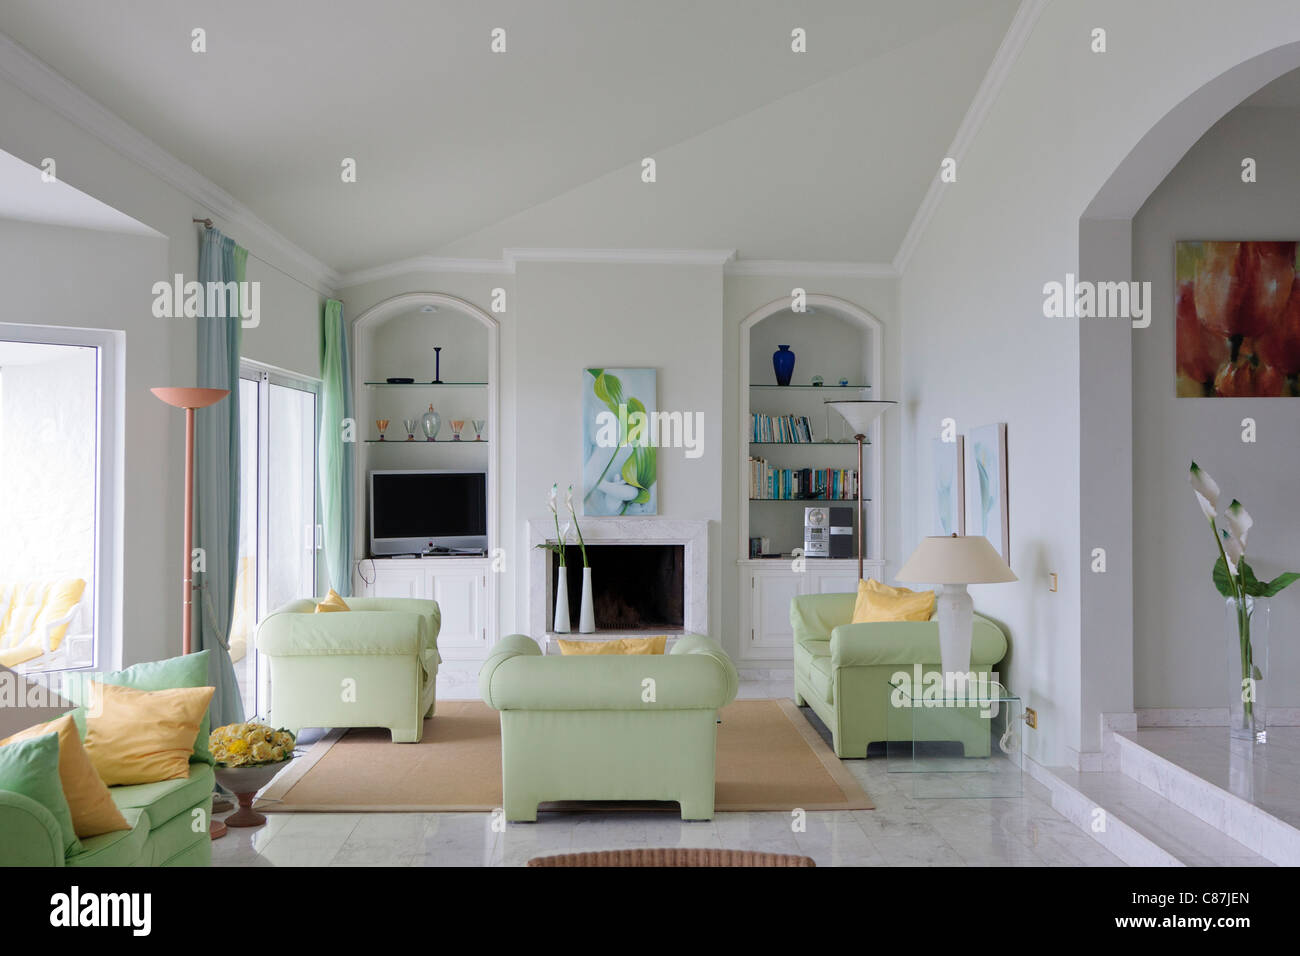 Modern Lounge Room With Light Green Sofas, Chairs, Tv, Stereo, With Marble  Floor